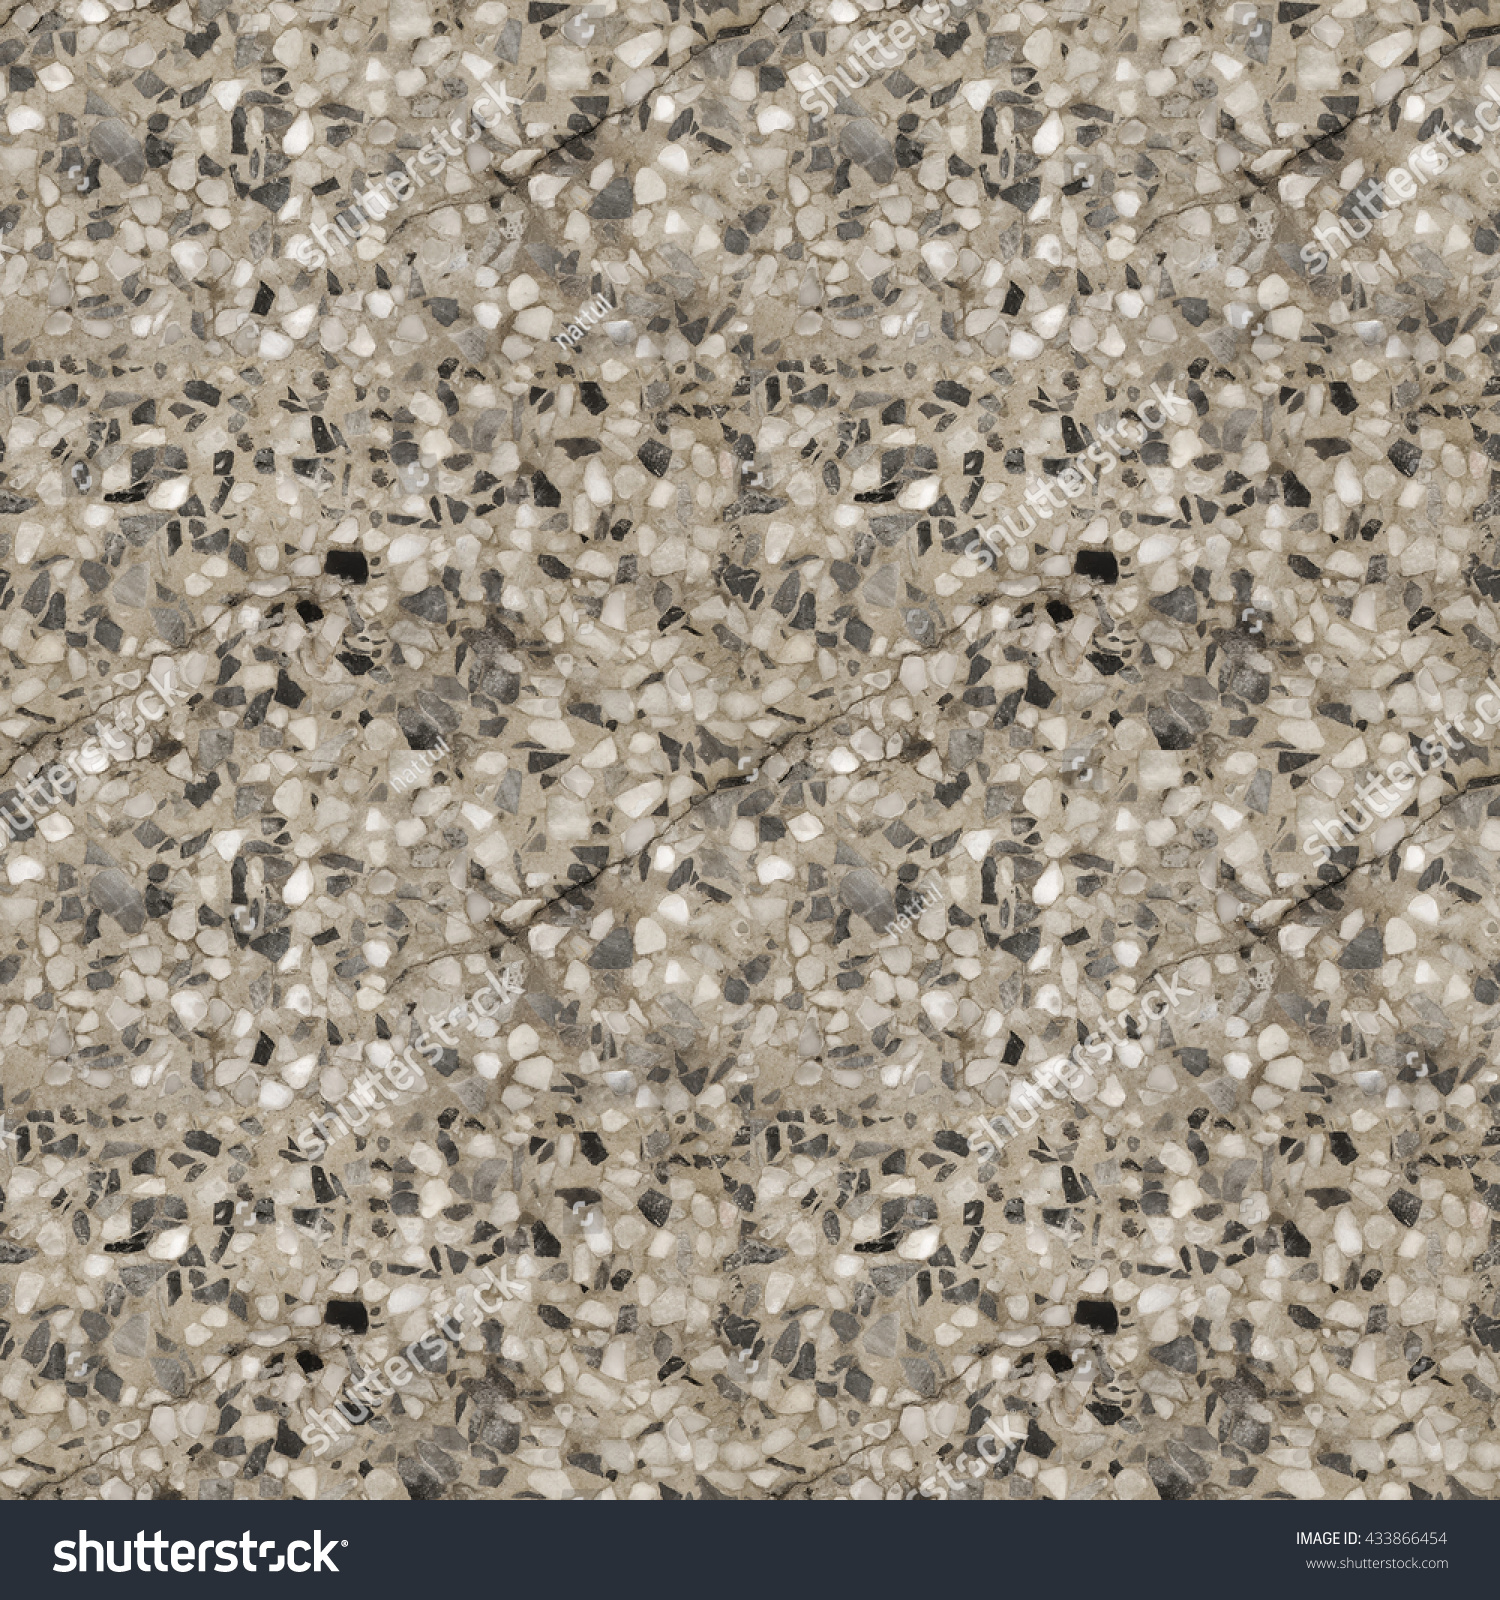 Abstract Seamless Texture Of Black And White Terrazzo Concrete